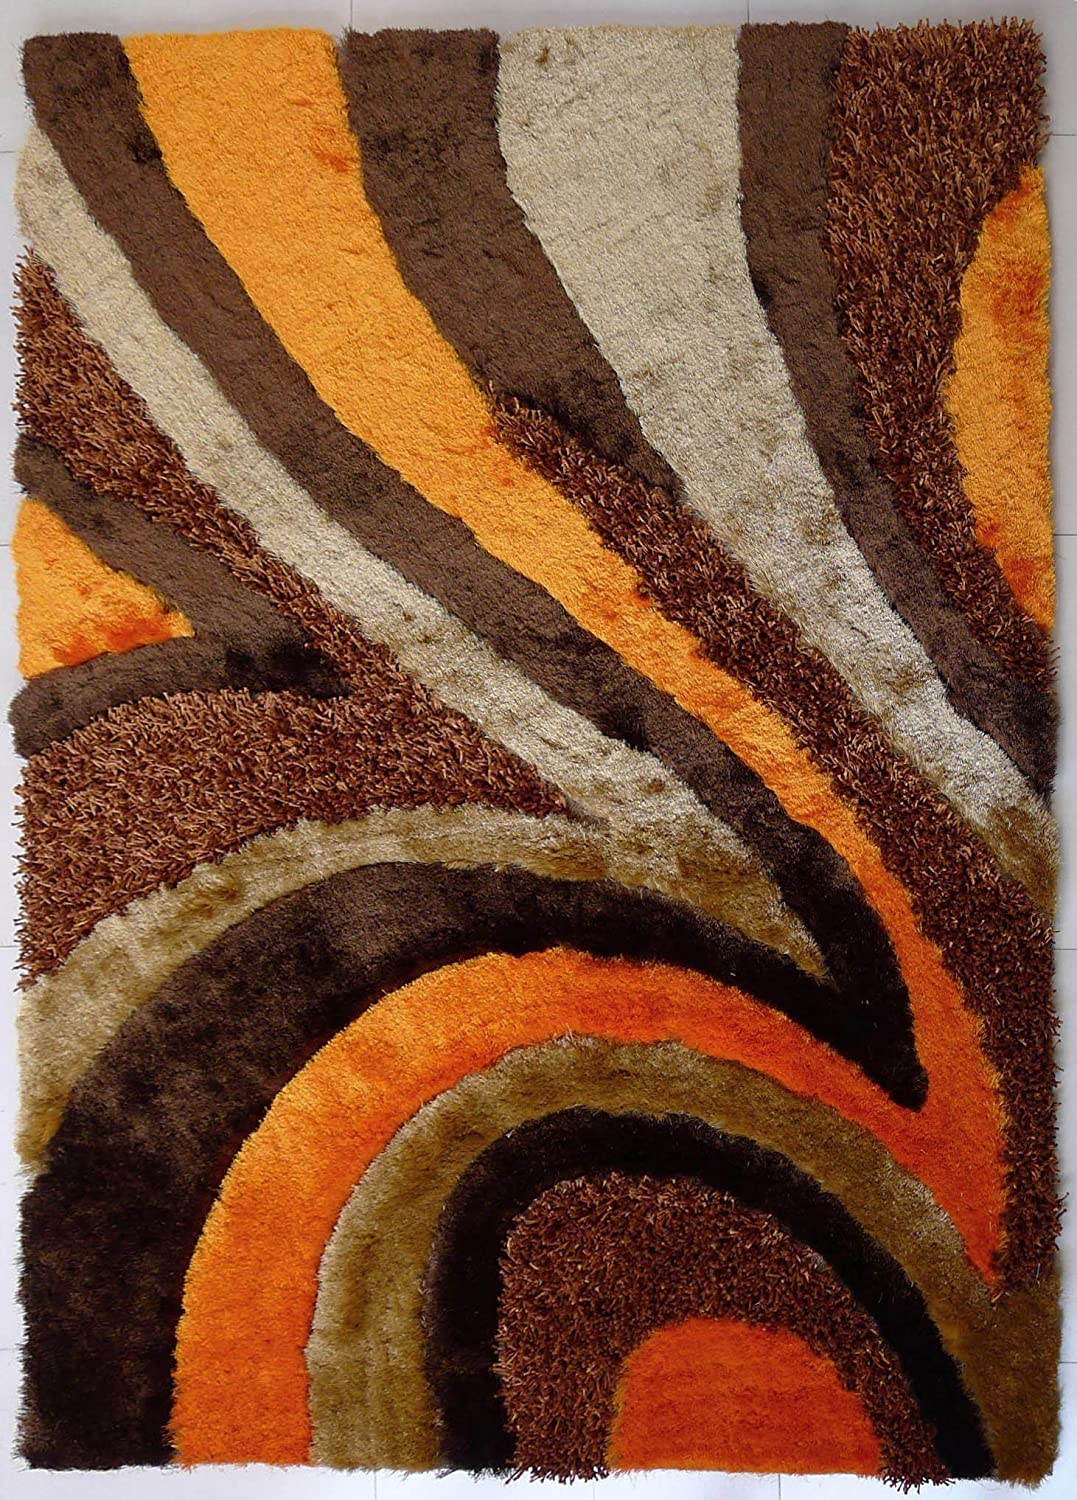 5280ef49d2c Amazon.com  Pure Comfort Hand Tufted Shaggy Area Rug With A Vibrant  Colorway Of Beige Brown And Orange Featuring A Modern Sleek Design Exact  Size 7 Feet 6 ...